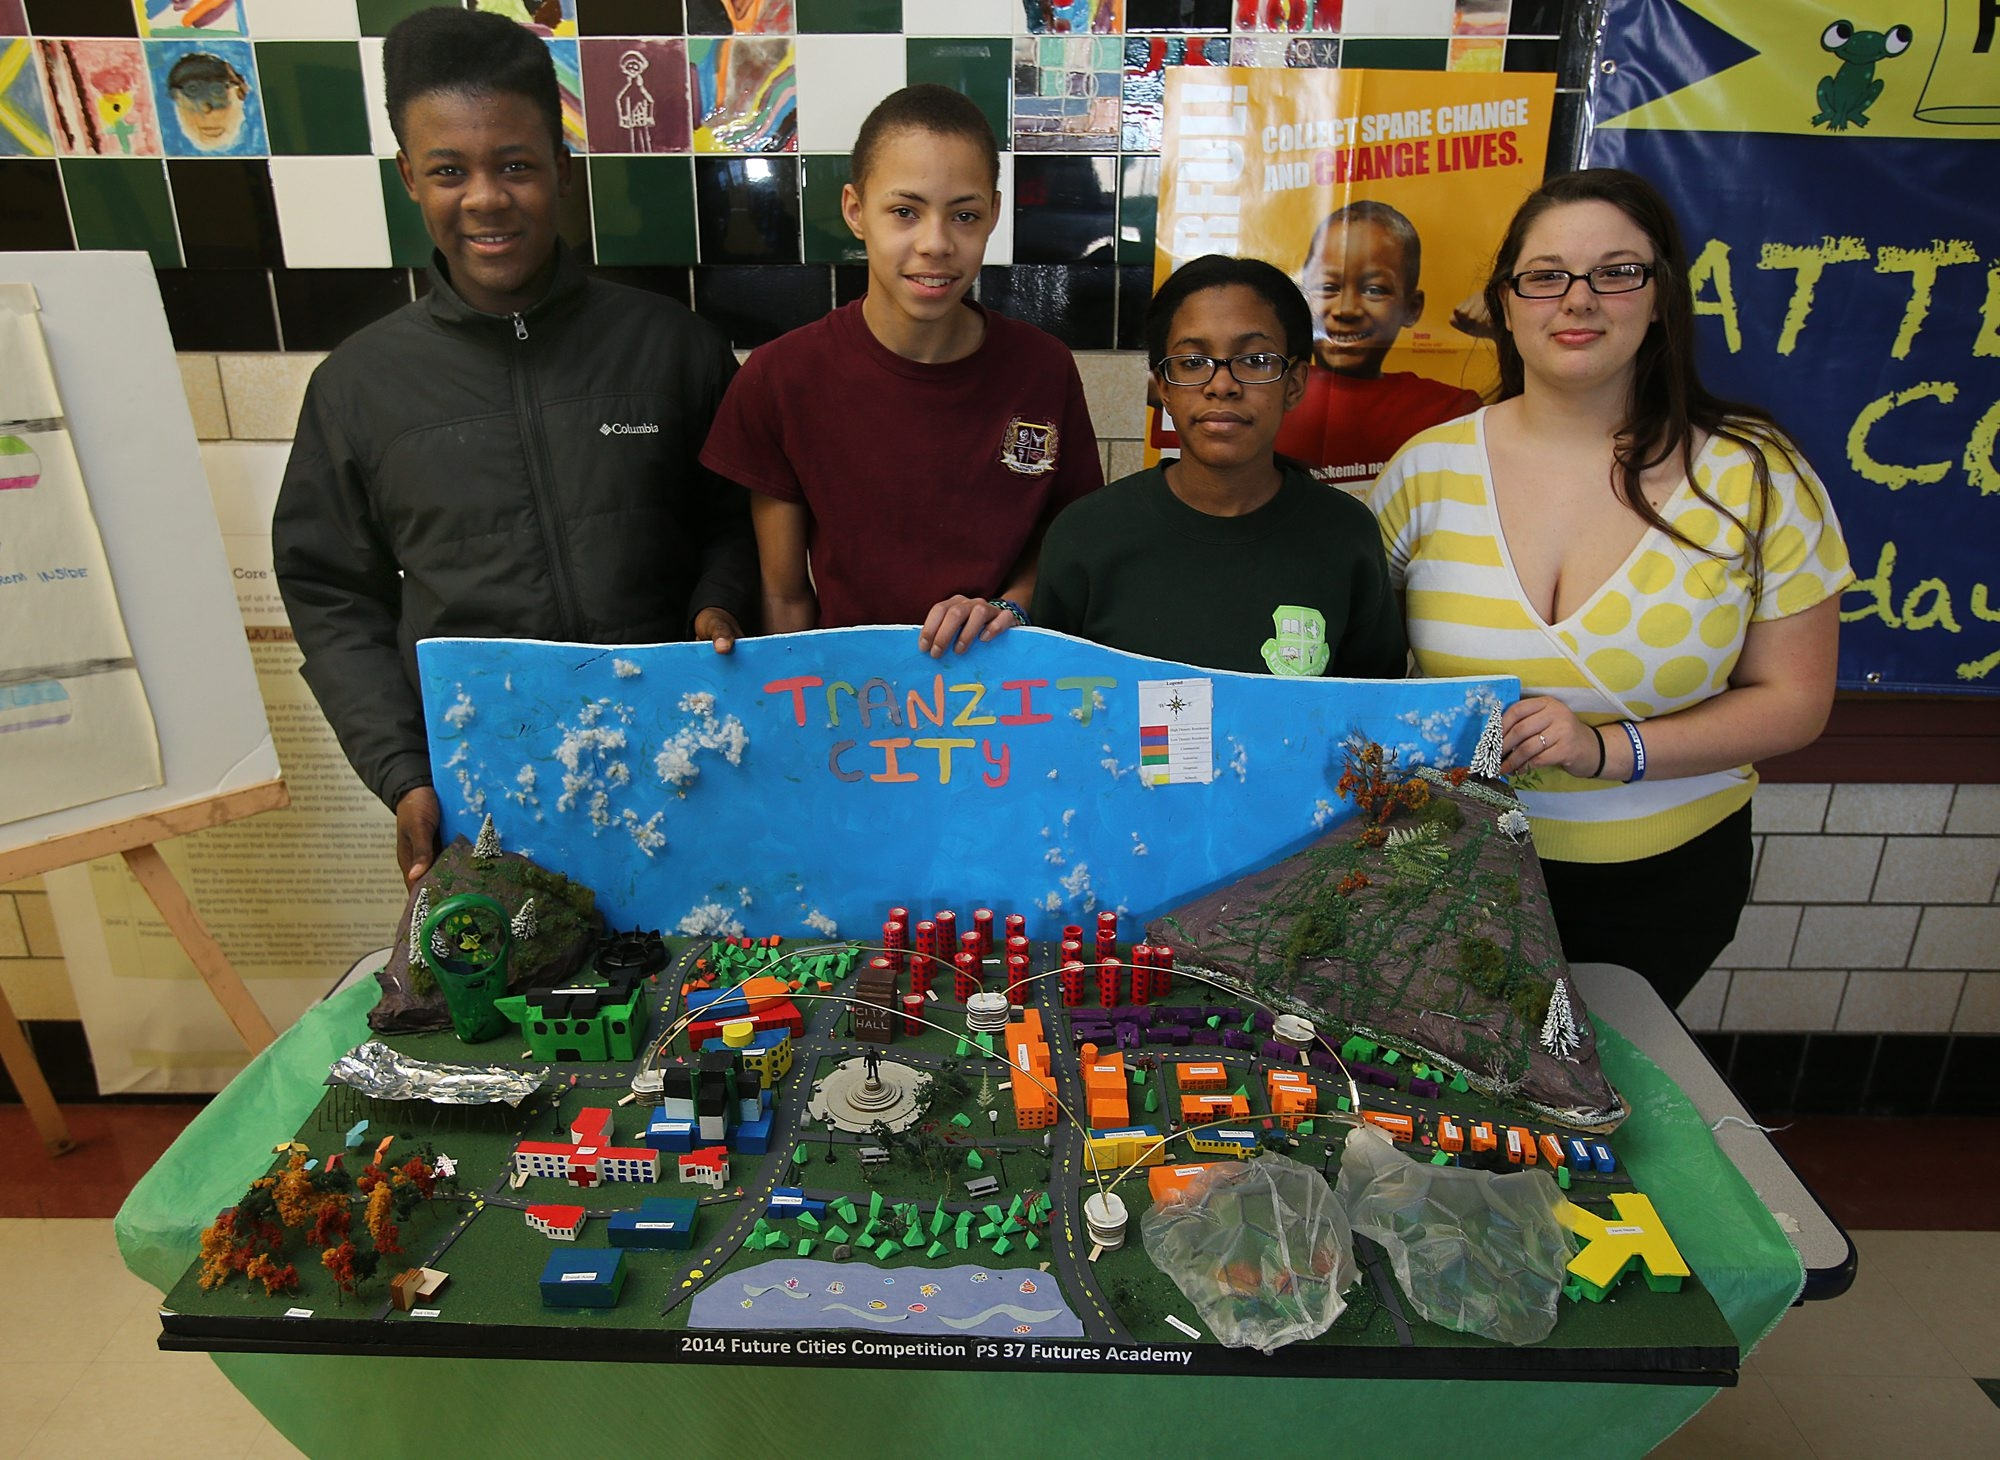 Futures Academy team – from left, Zwanie Wright, 14; Johnathen Nelson, 14; Karion Carter, 13; and Monsonna Schaef, 15 – displays entry that earned regional honors among 15 WNY rivals that vied in the 2014 National Engineers Week Future City Competition.